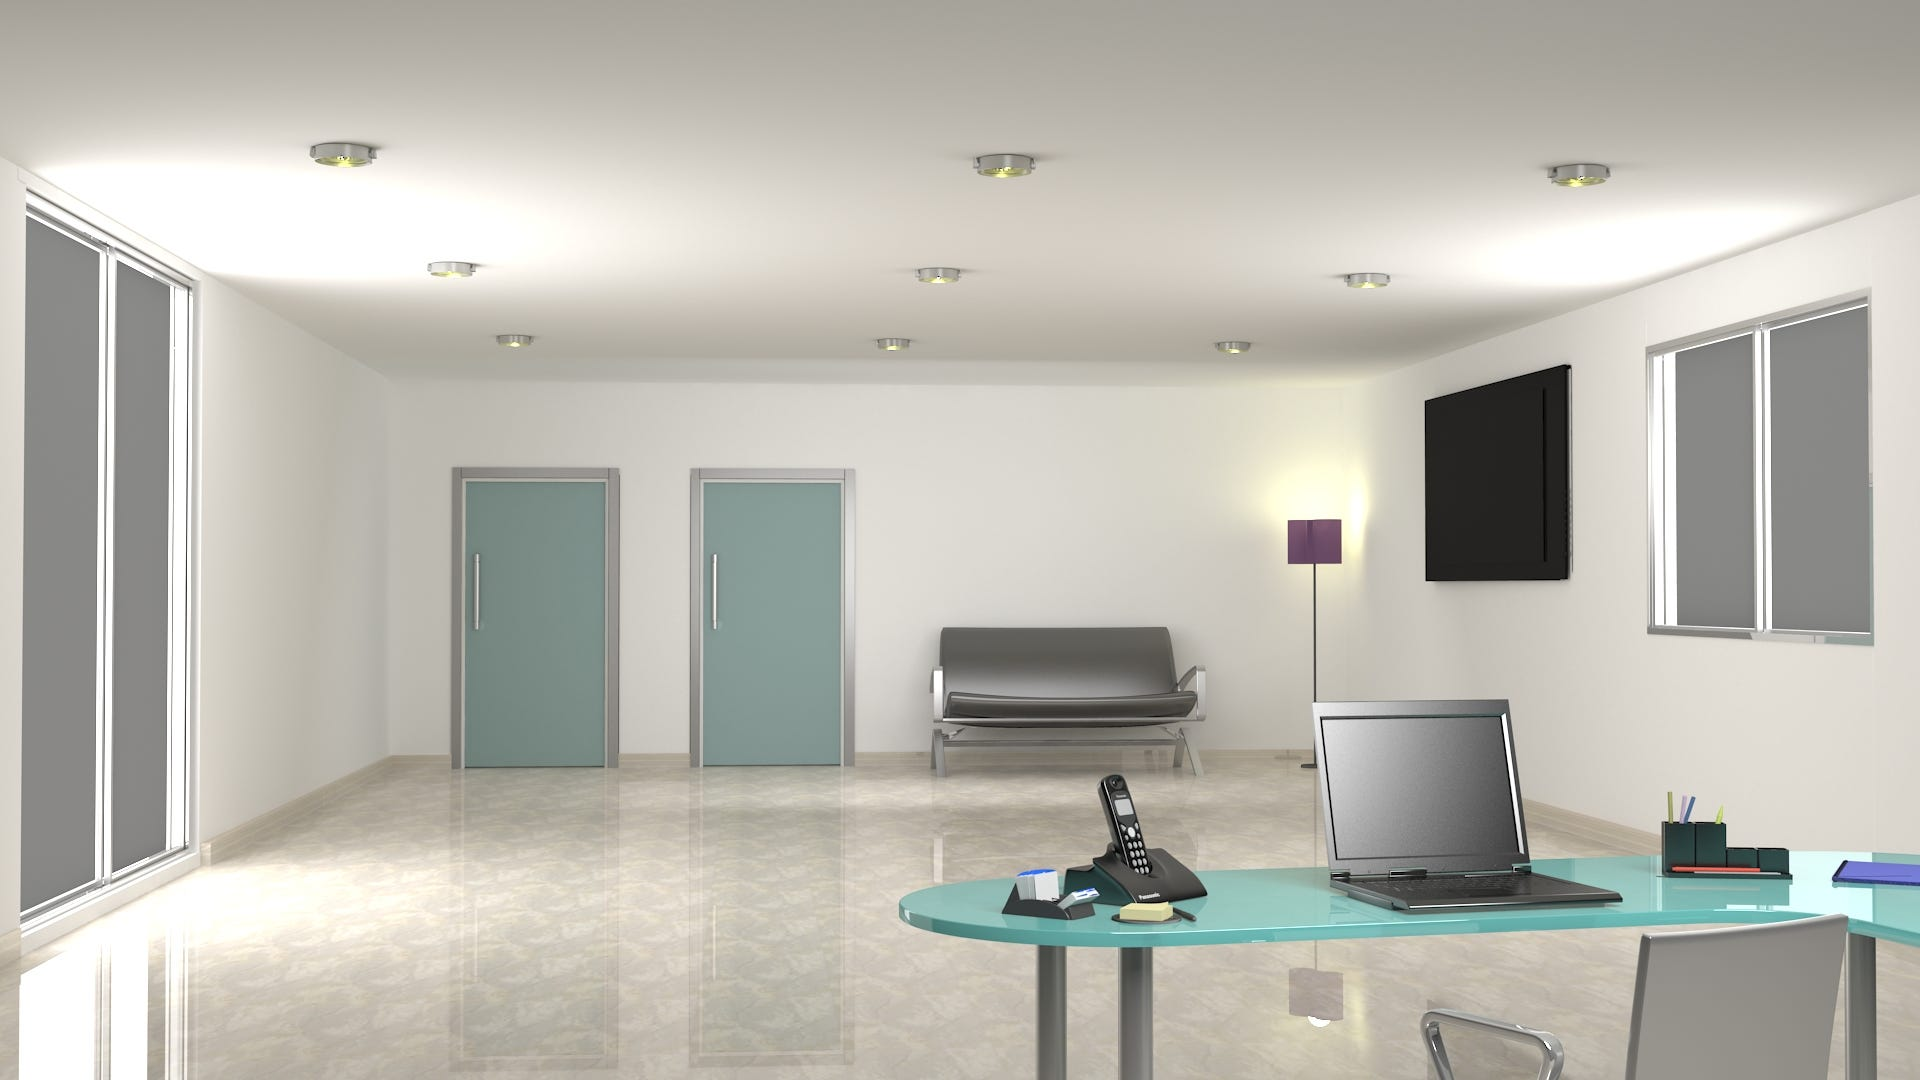 3D Model of a waiting room